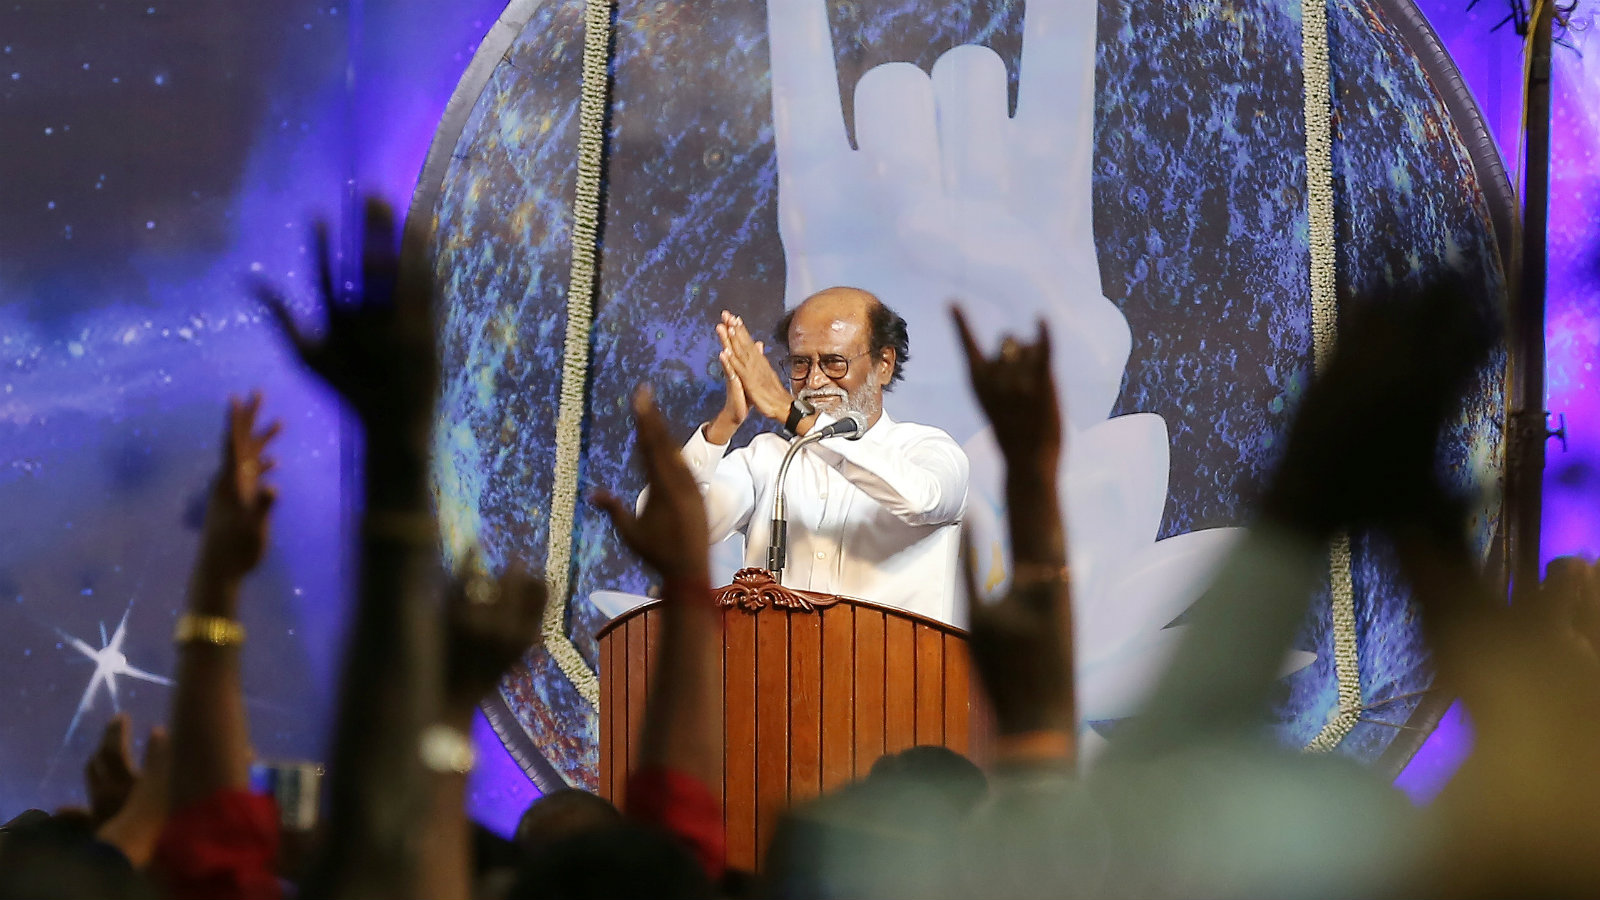 Rajinikanth greets his supporters after announcing the launch of his political party in Chennai, India, on Dec. 31, 2017.